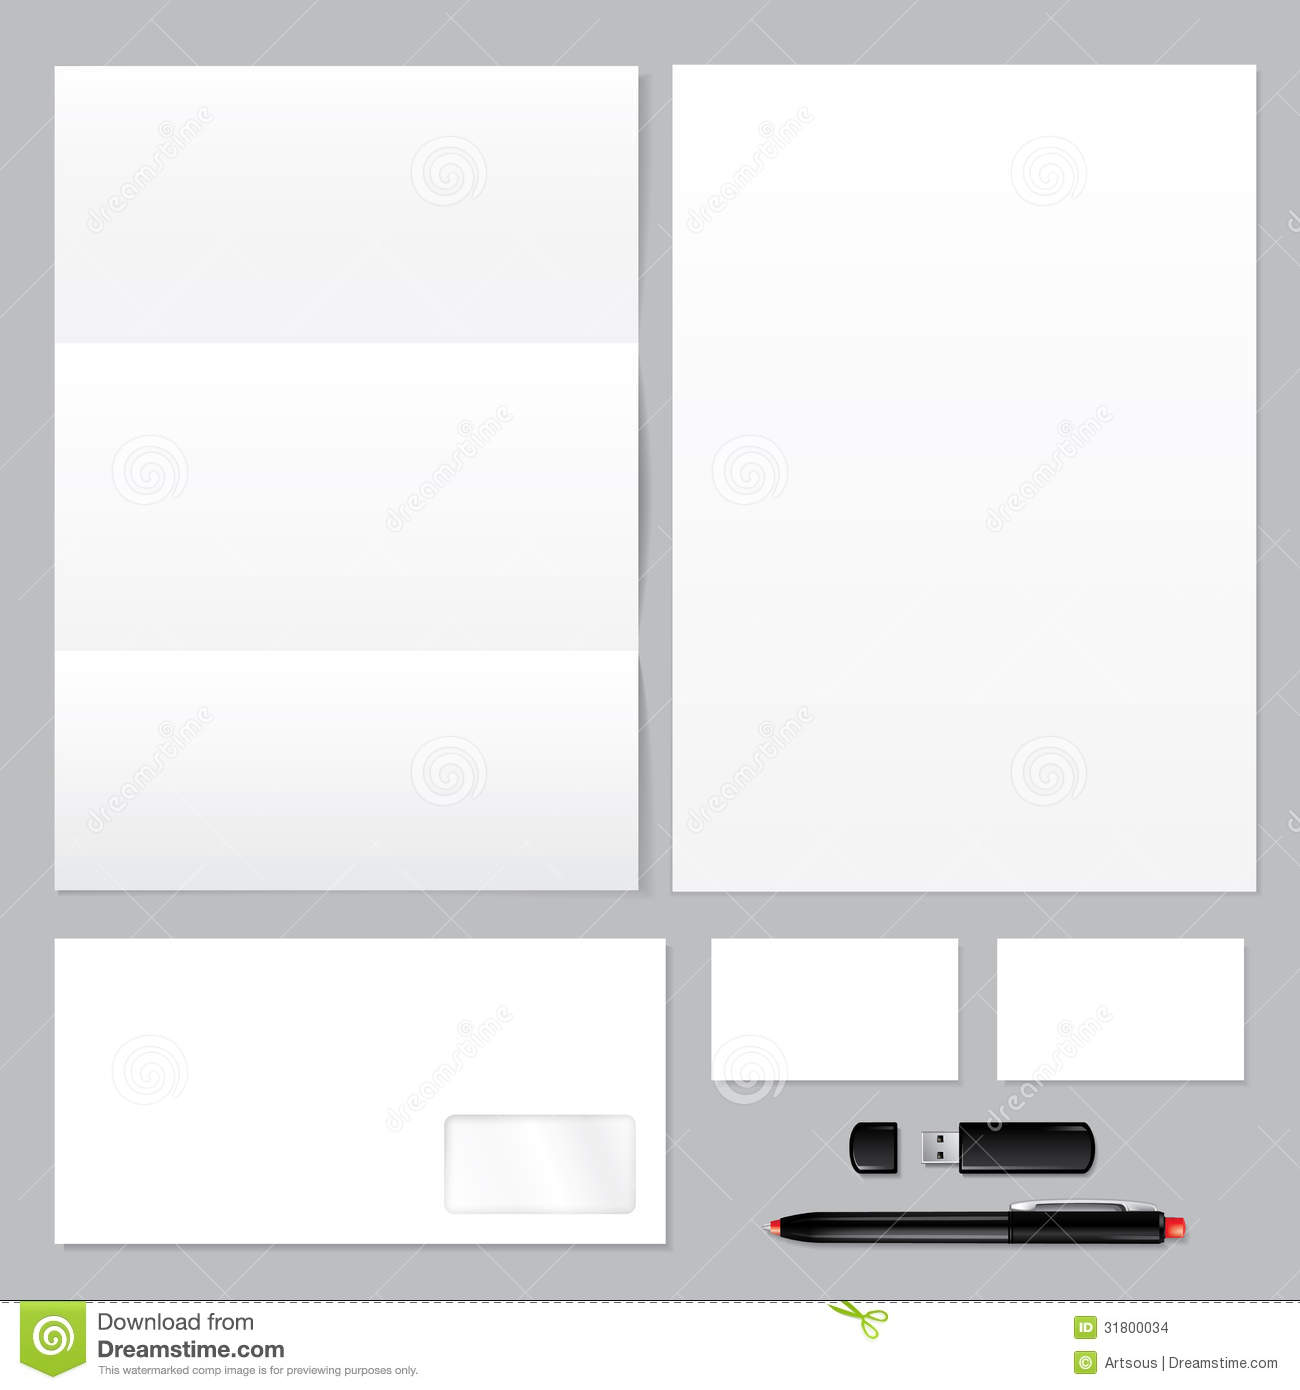 Blank Stationery And Corporate Identity Template Consist: Blank Business Corporate Identity Template Stock Images